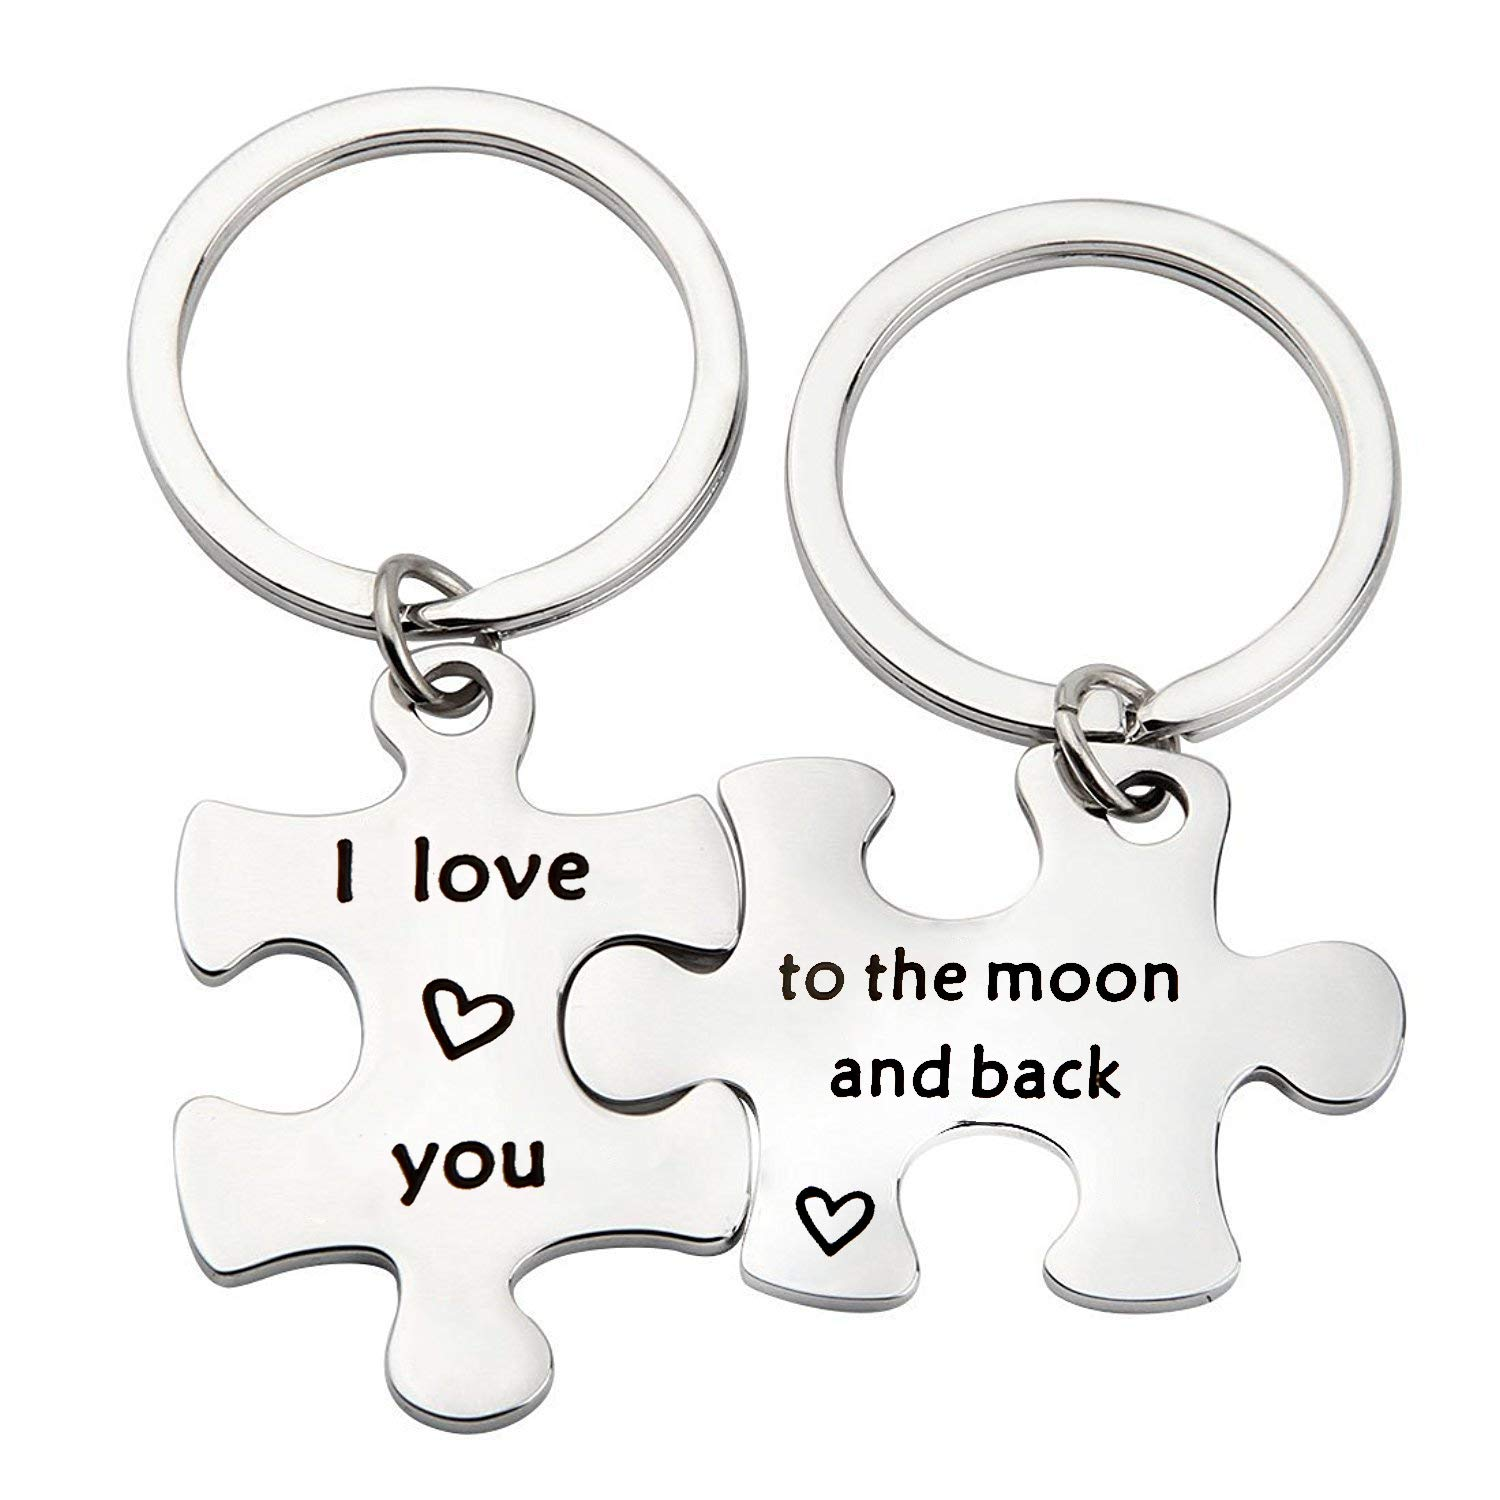 Amazon com: TGBJE I Love You to The Moon Back Keychain His